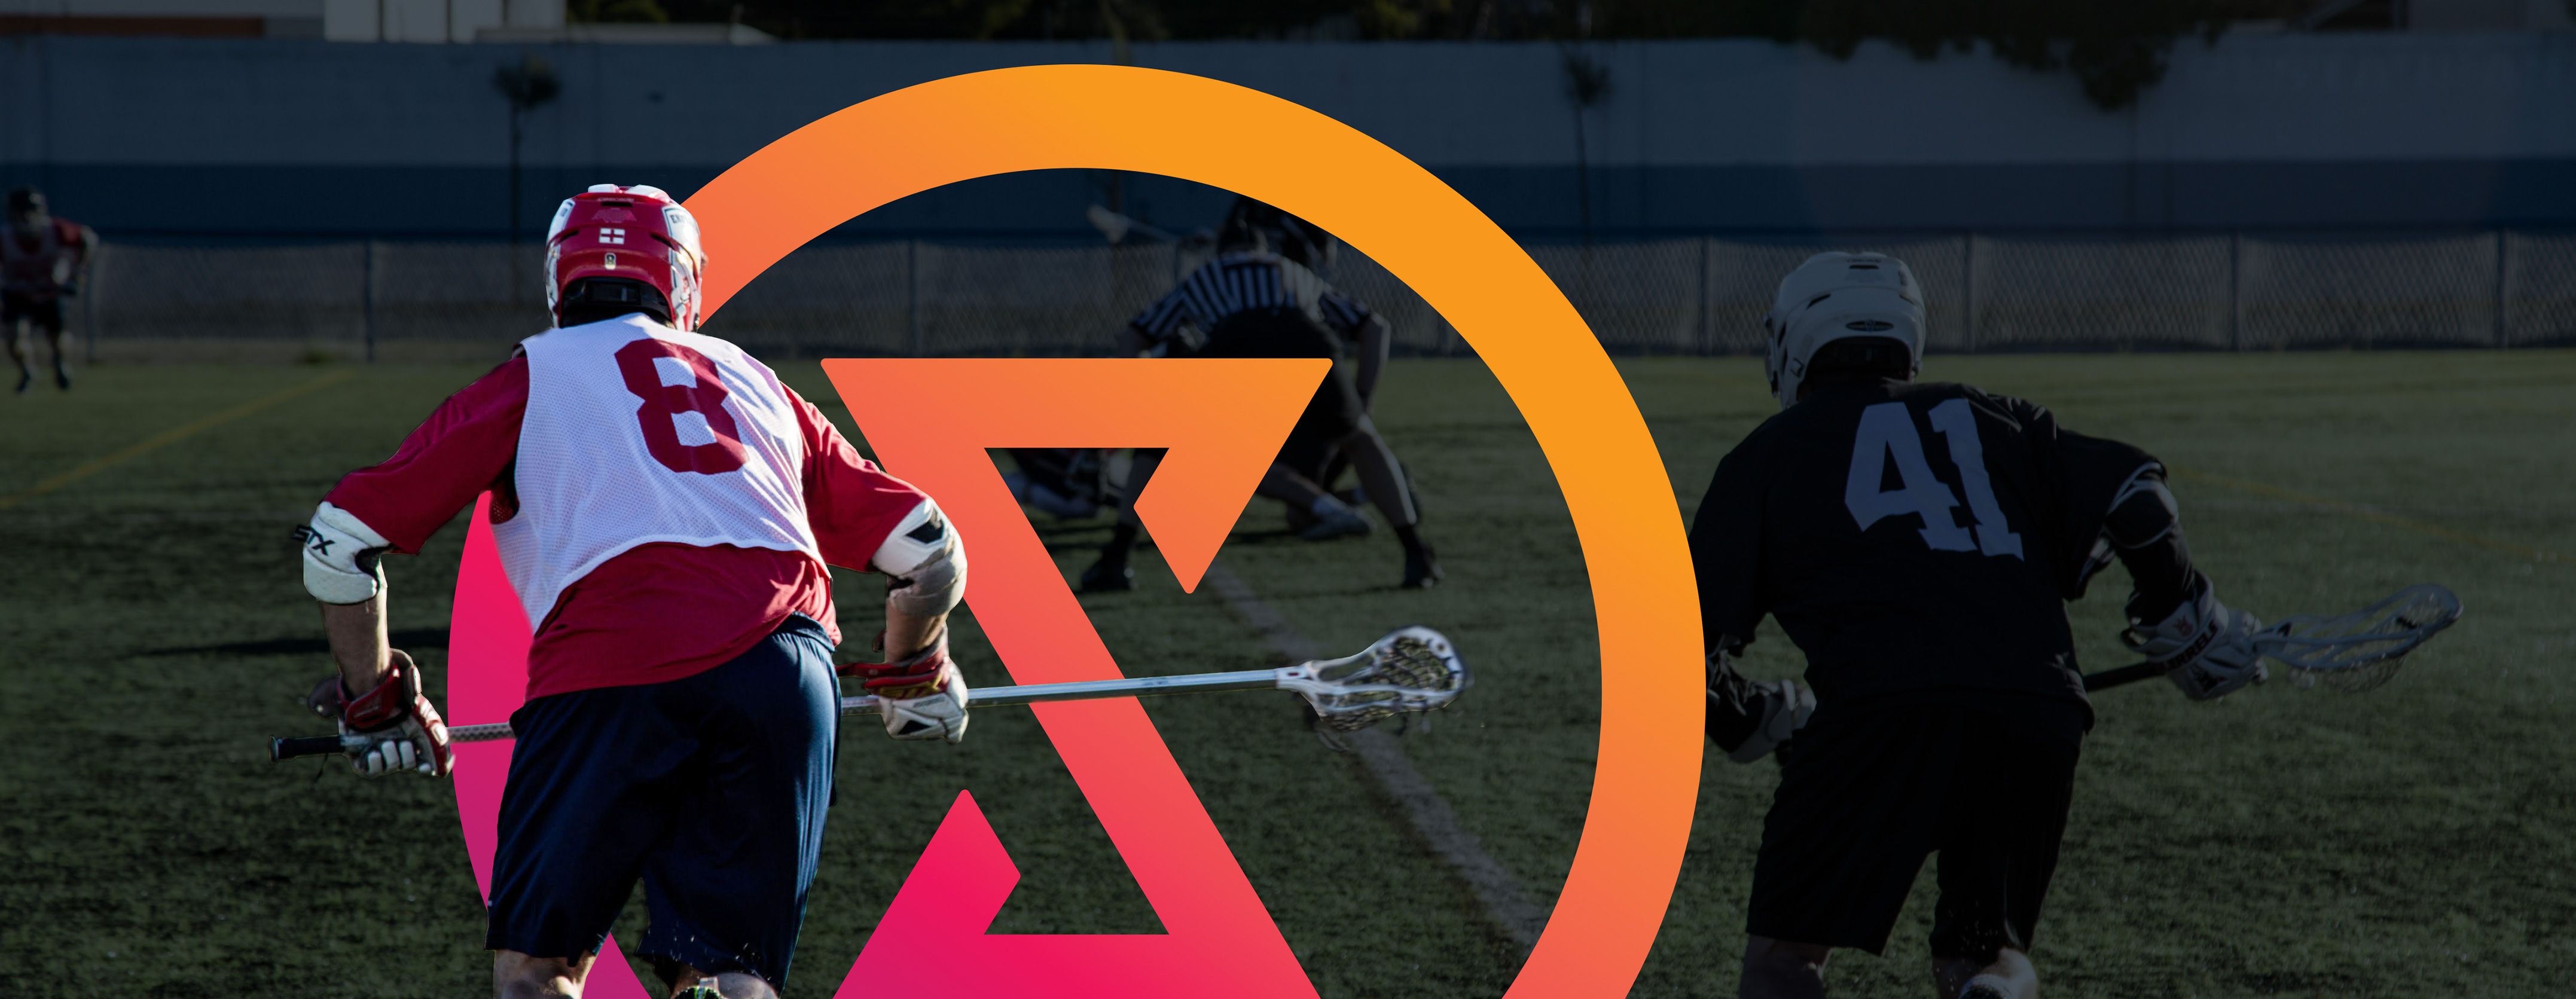 Lacrosse-Tour-Camps-Event-Portugal-Spain-Italy-Sports-Ventures